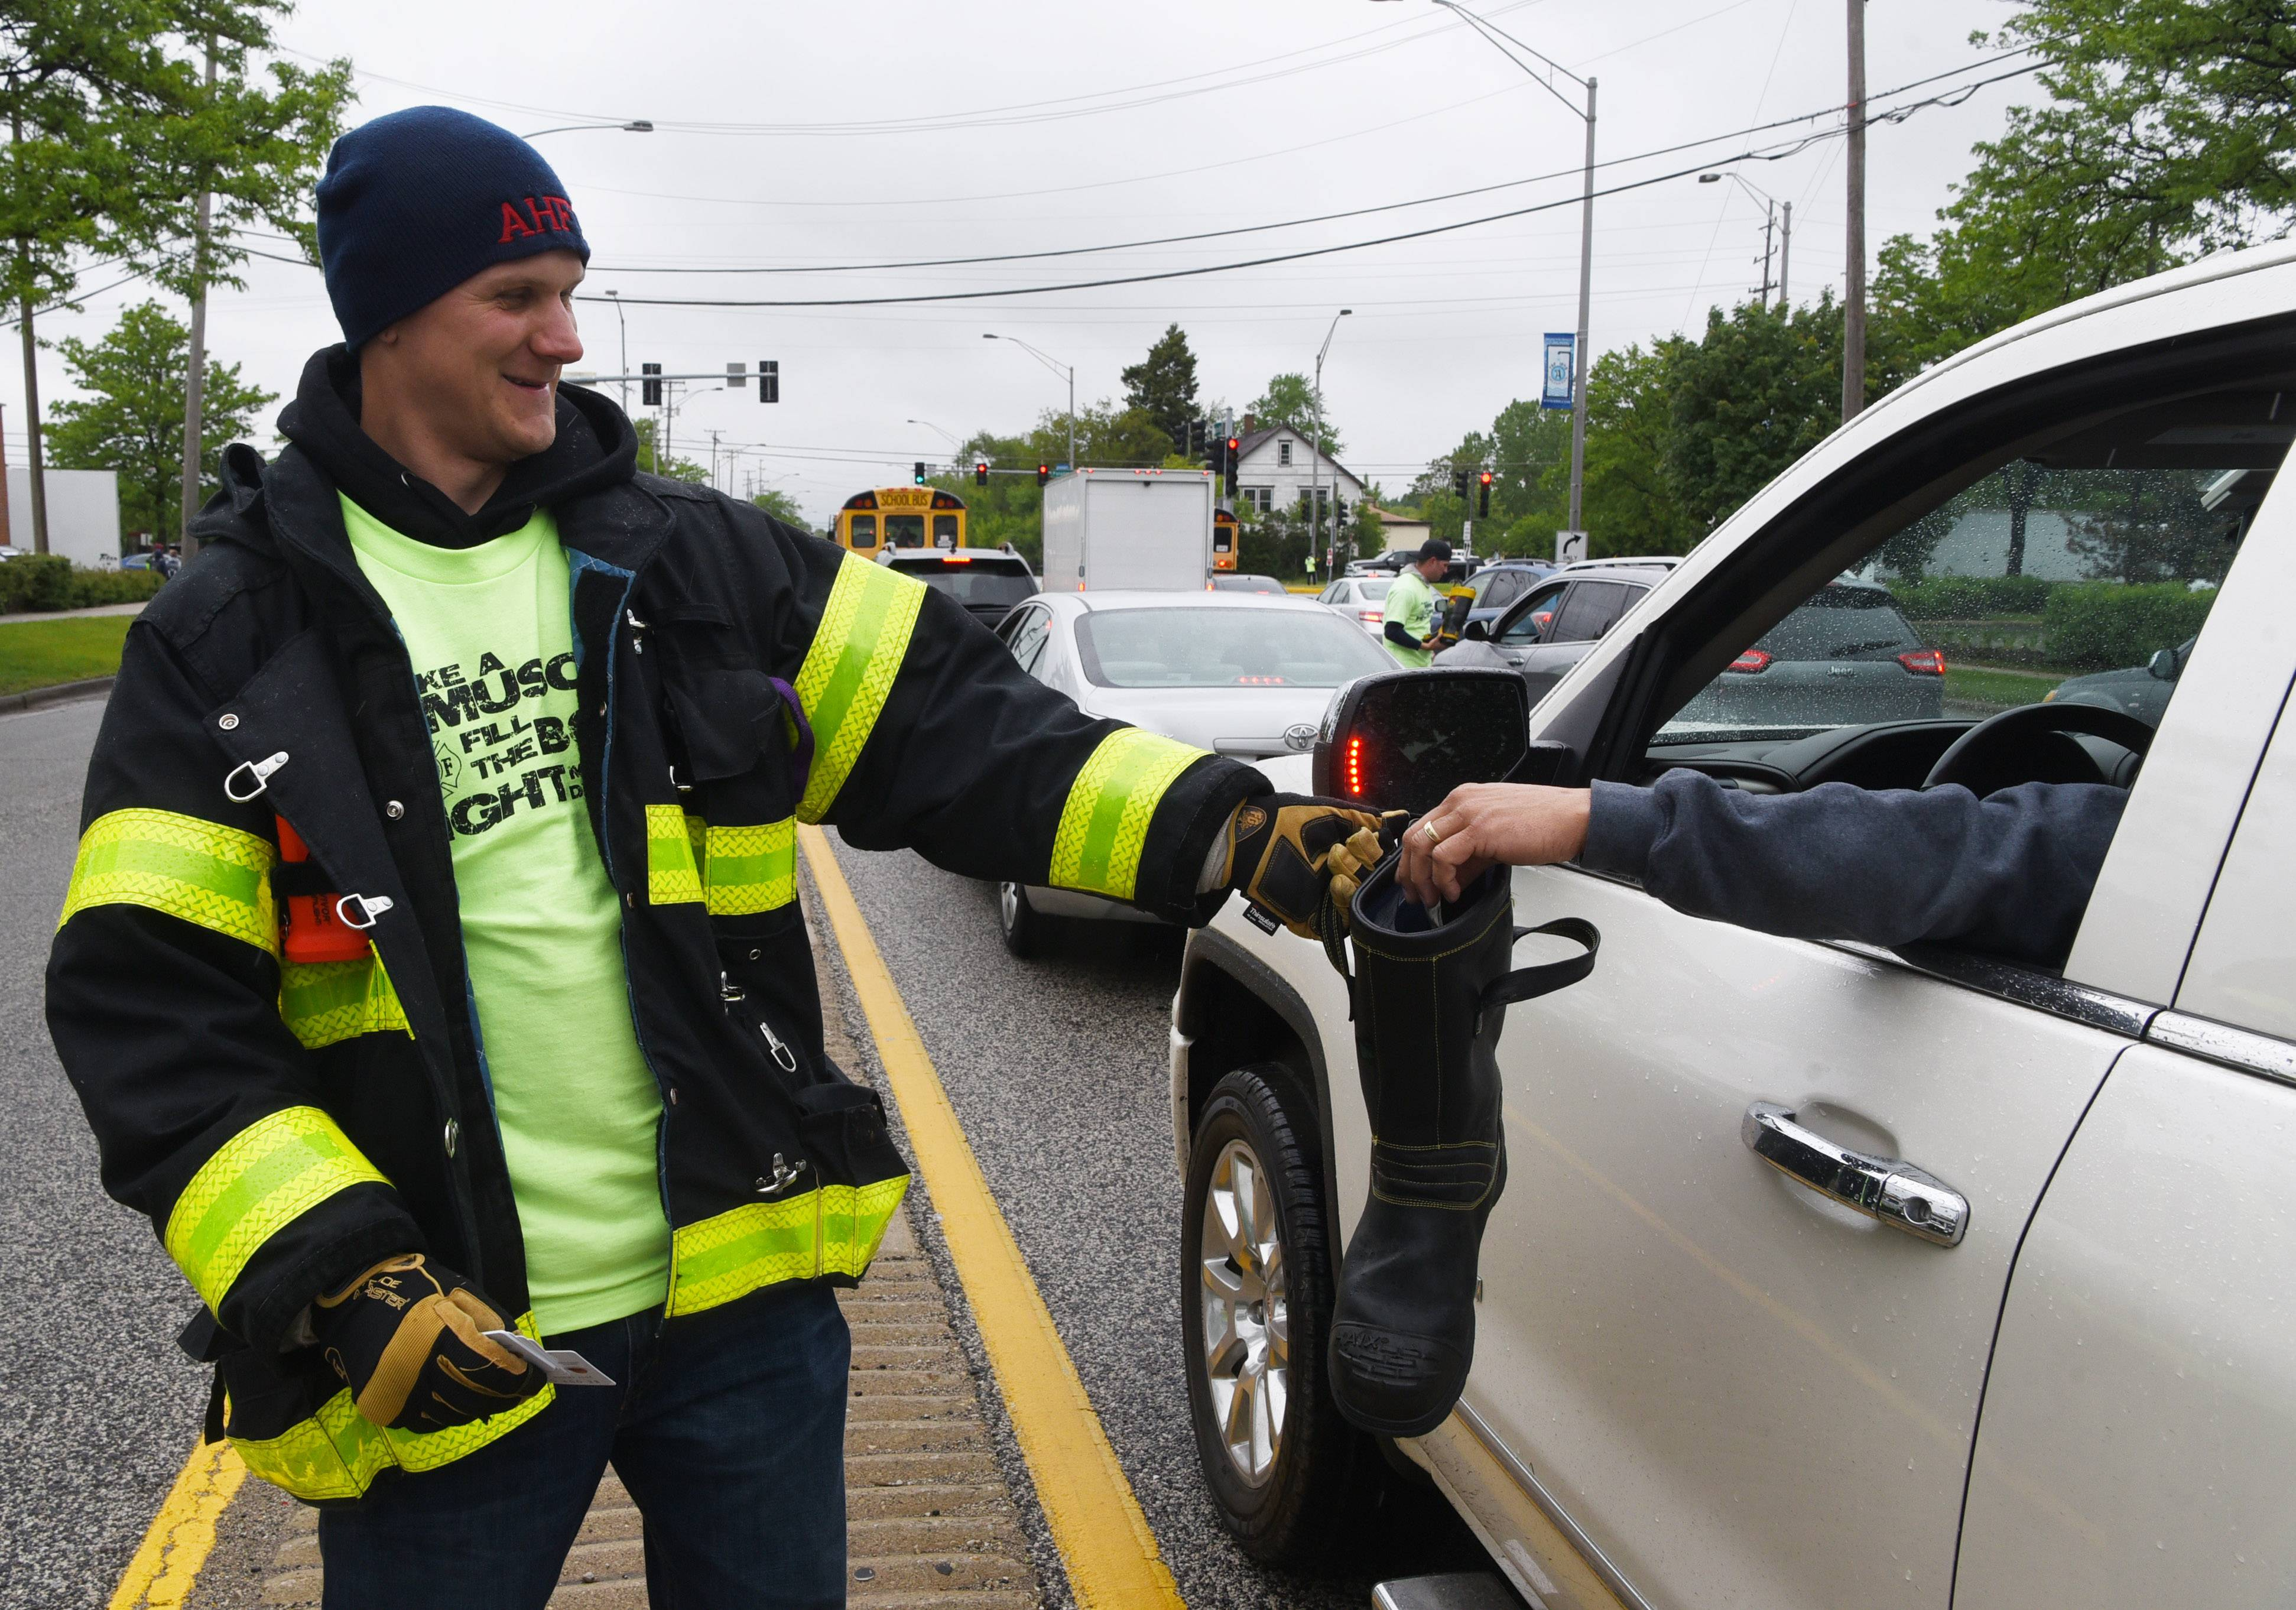 Arlington Heights firefighter/paramedic Brett Proctor of Local 3015 collects donations in a boot Friday at the intersection of Arlington Heights and Palatine roads.